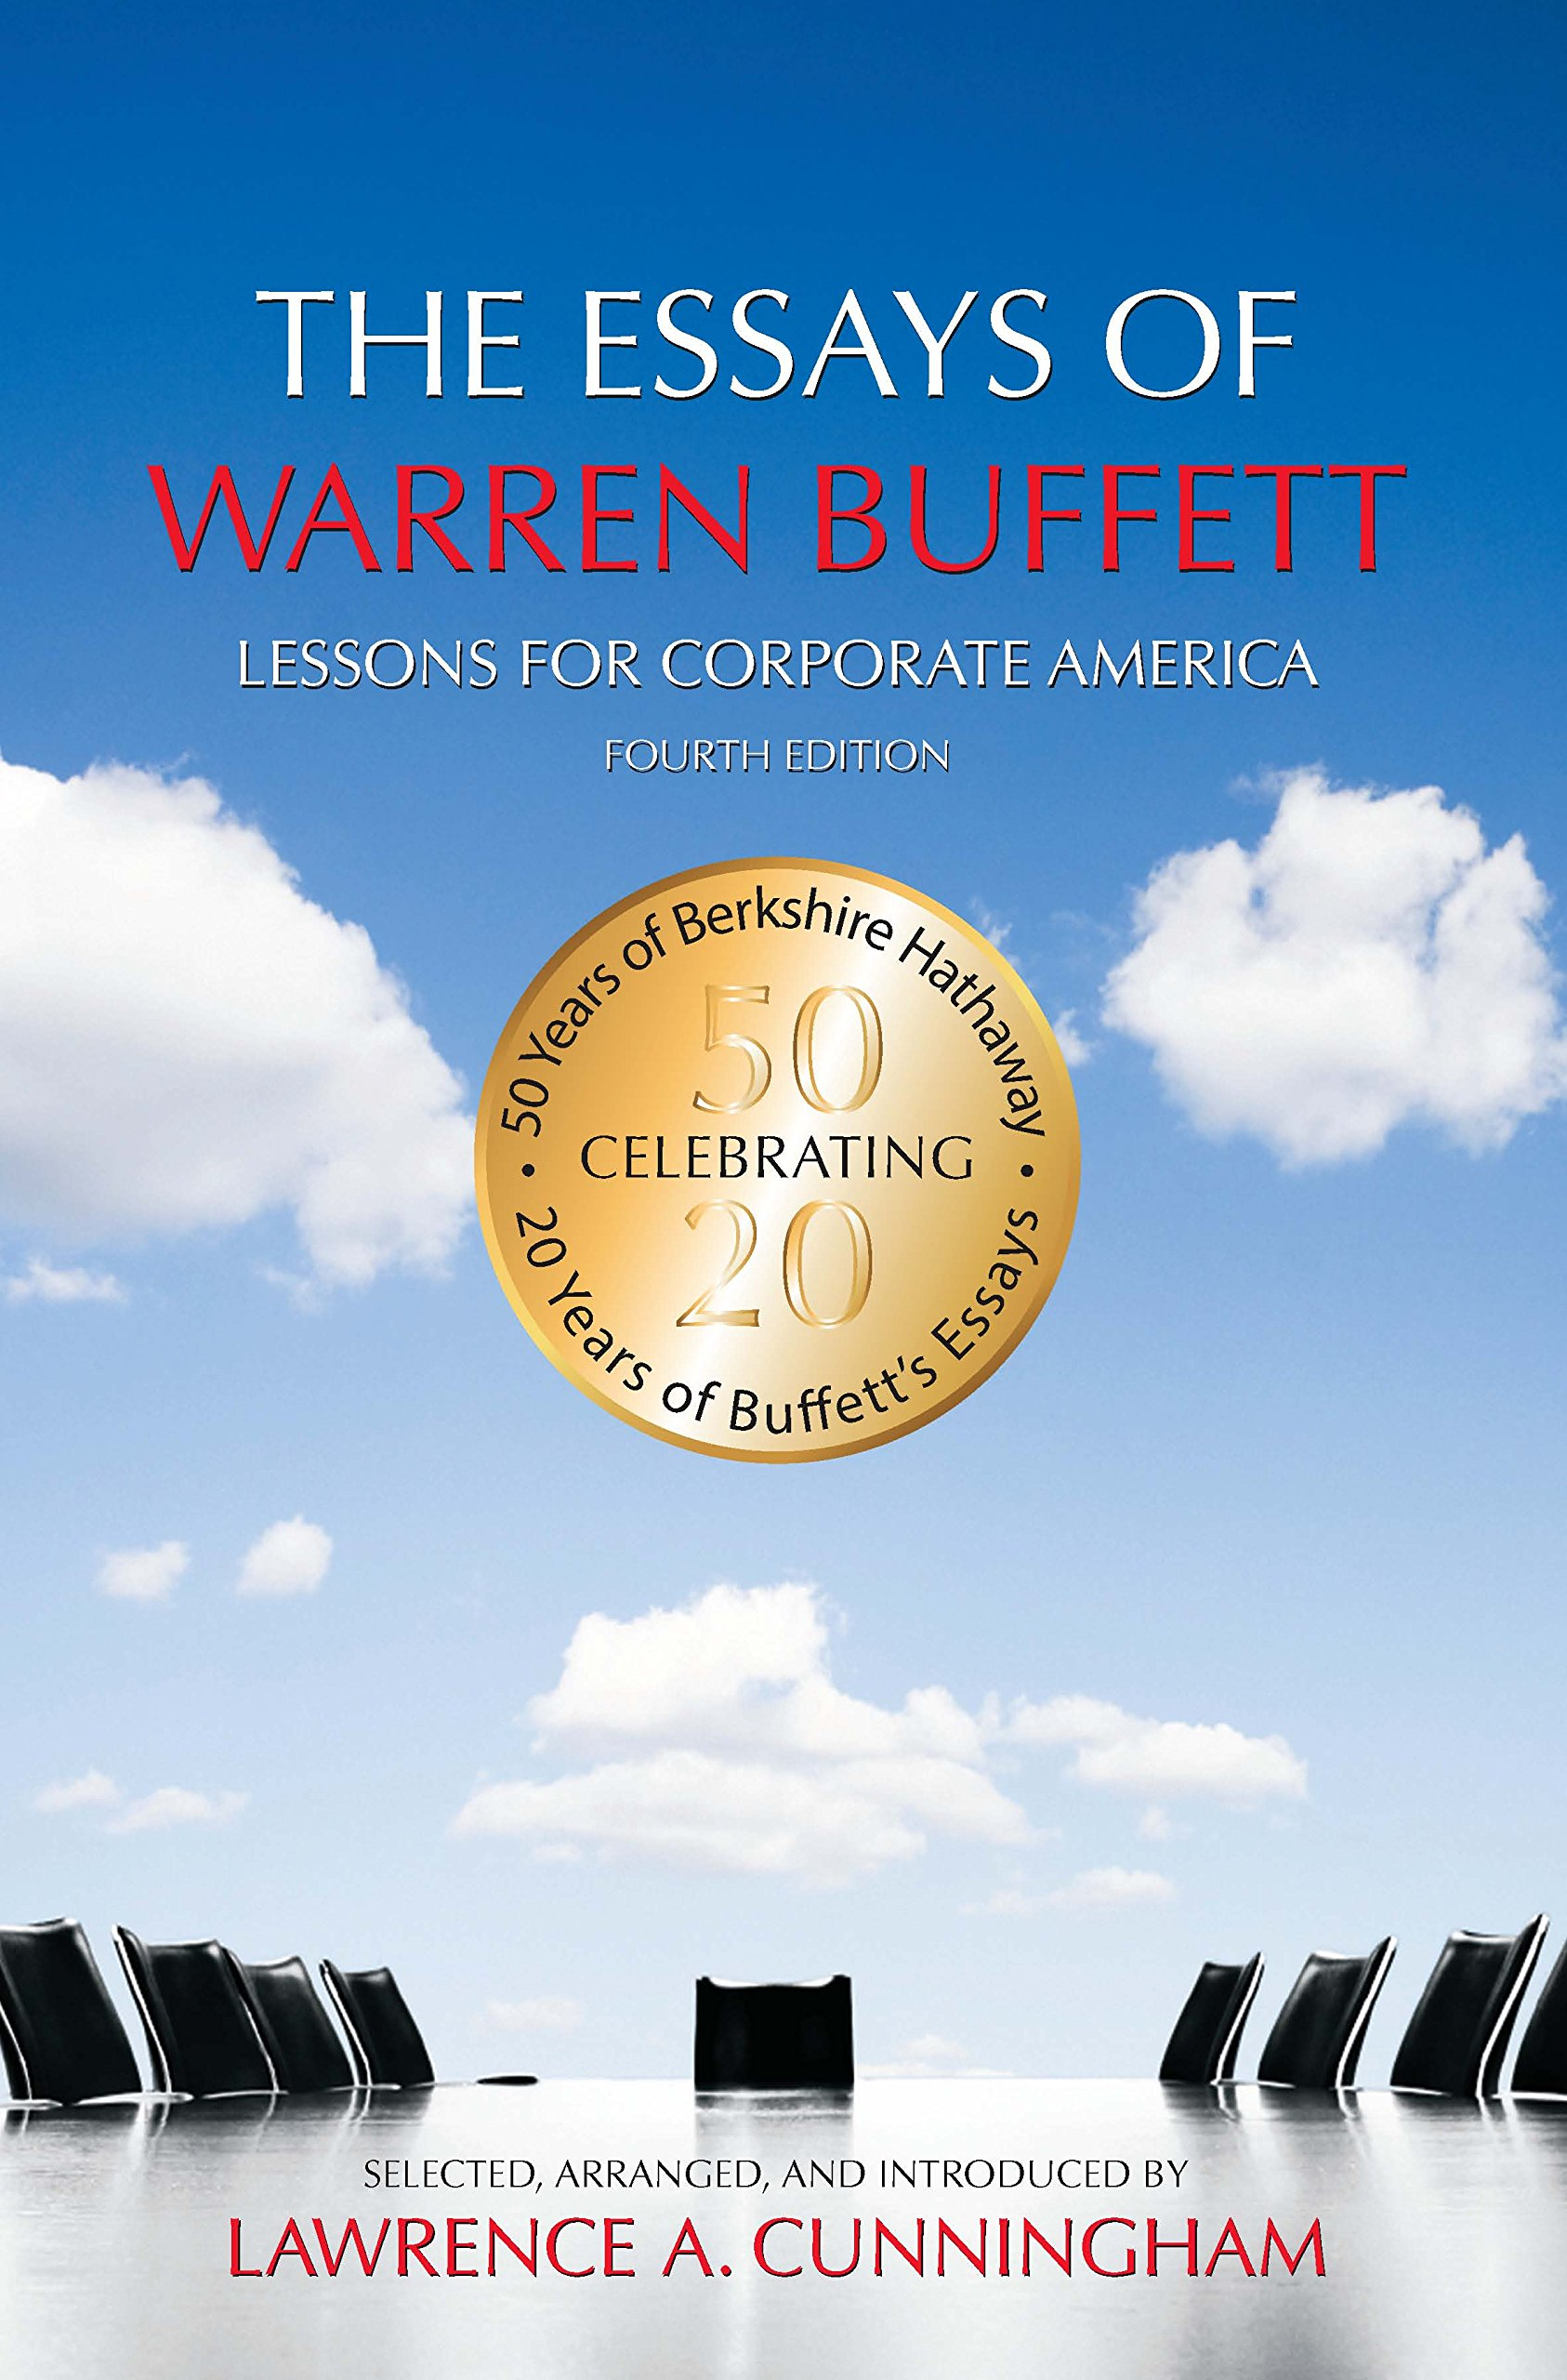 011 Essay Example 81wiv2brymel The Essays Of Warren Buffett Lessons For Investors And Striking Managers 4th Edition Free Pdf Full